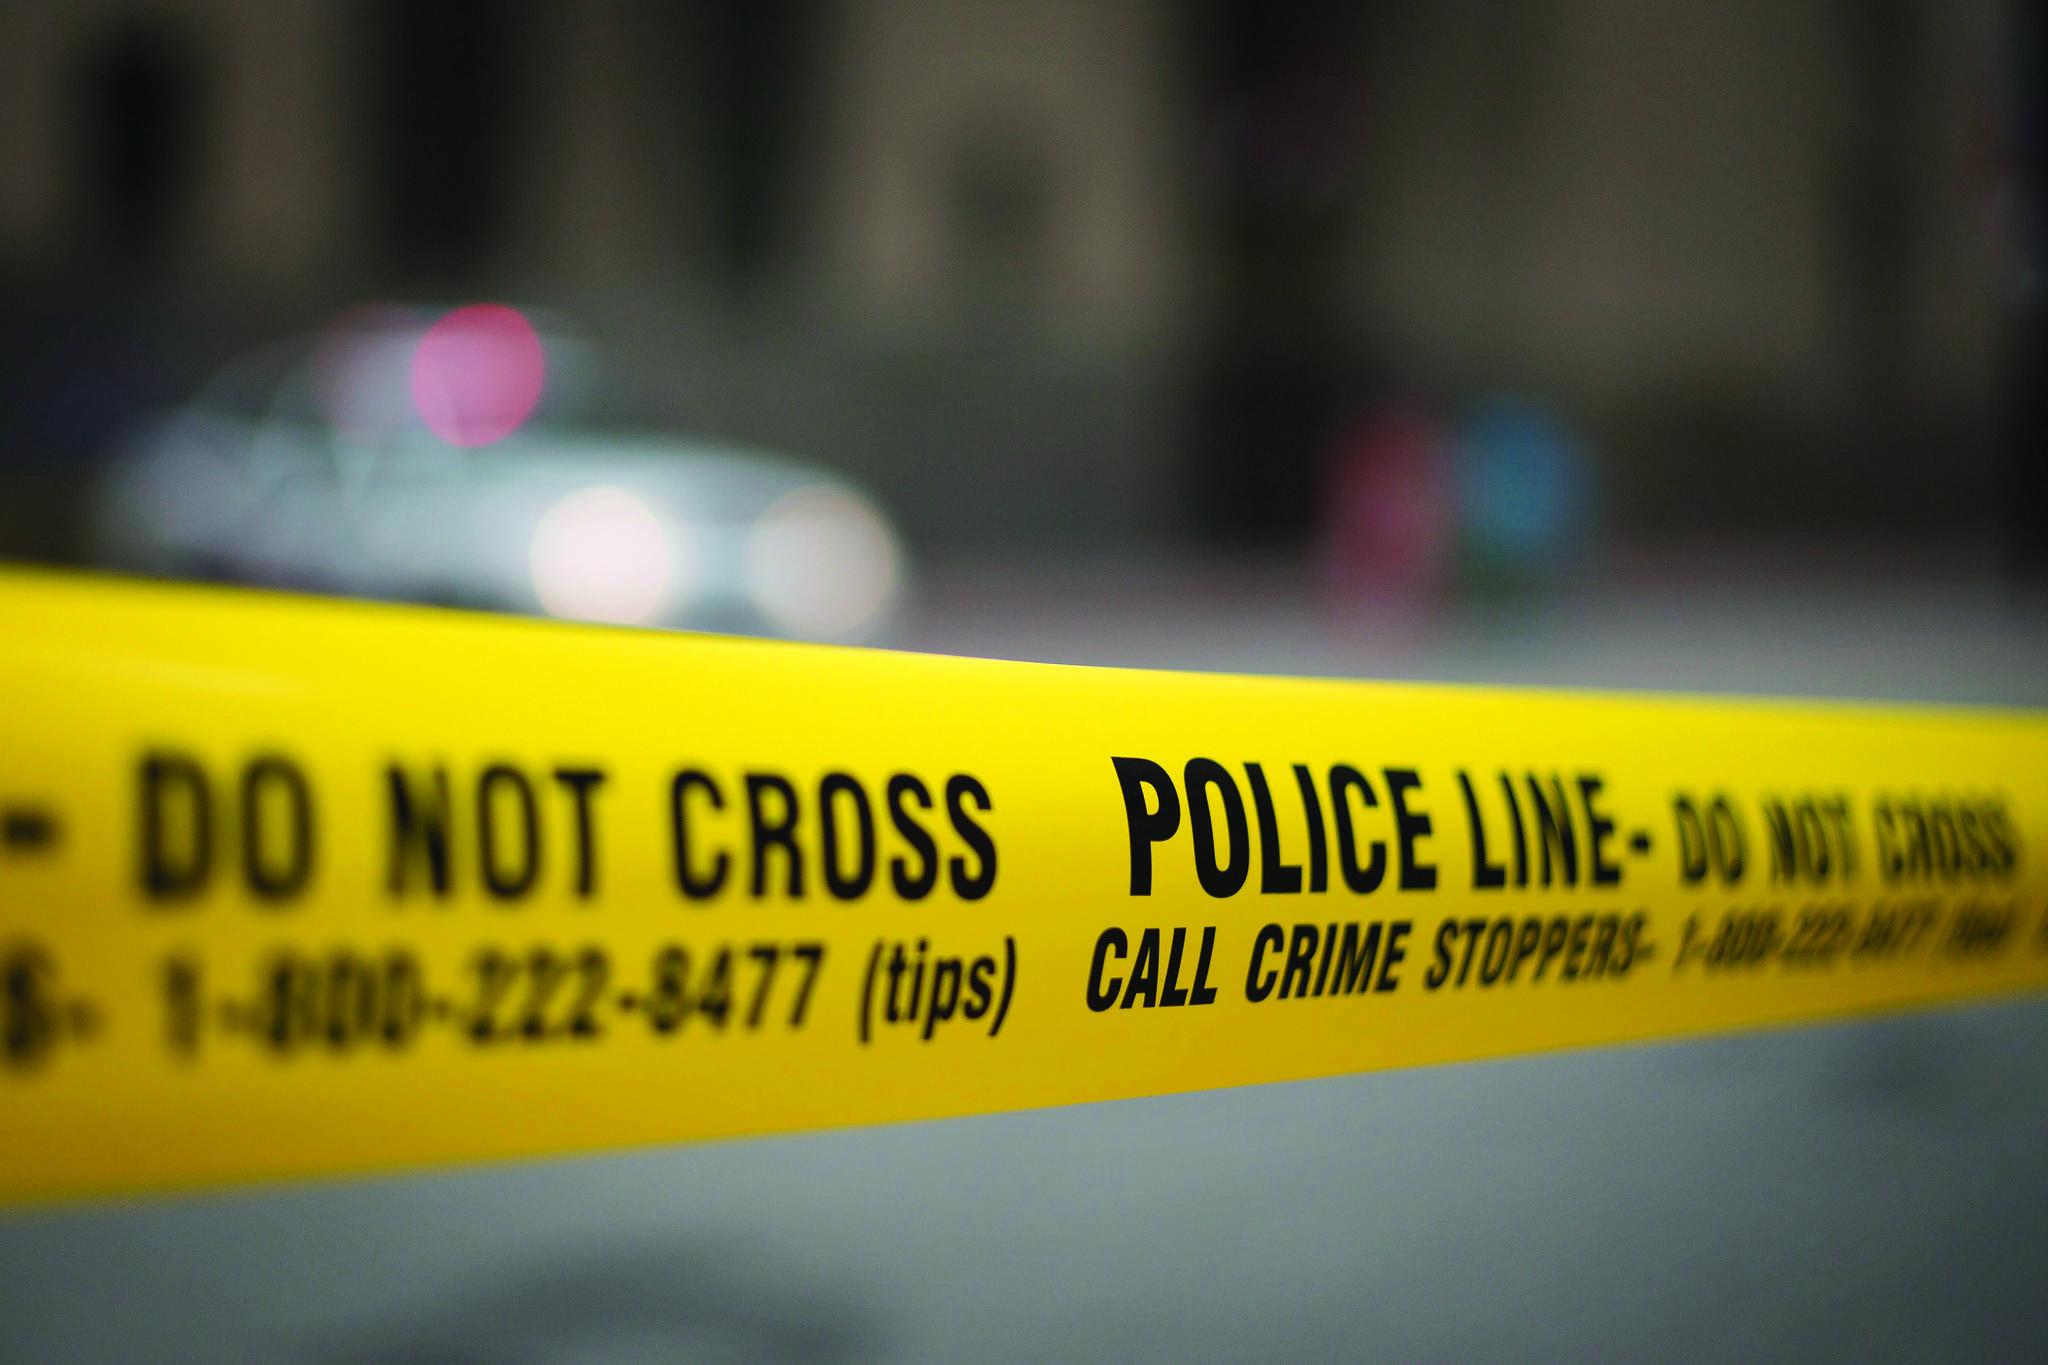 A local man has been arrested in connection with a hit and run with an ambulance early Monday, Nov. 9, 2020. (THE CANADIAN PRESS/Graeme Roy)